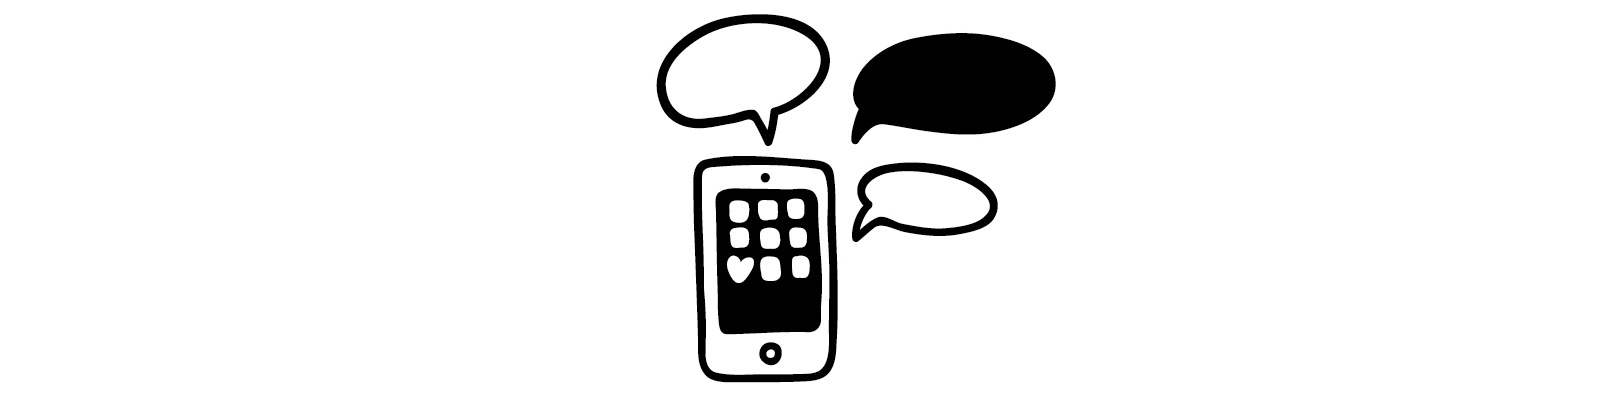 """Phone and speech bubbles illustration - """"This is Why I Suck at Social Media"""" blog"""